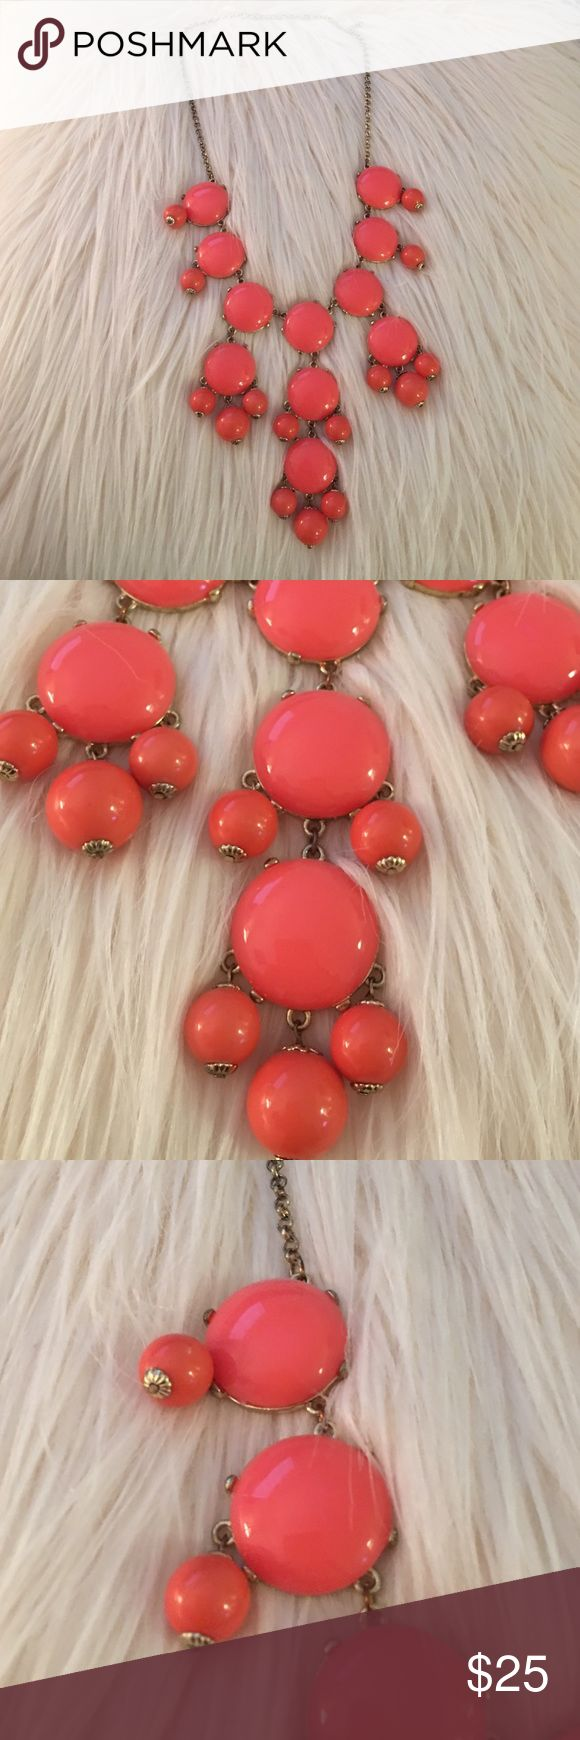 Coral bubble necklace Bubble necklace with no missing beads/balls. Free People Jewelry Necklaces